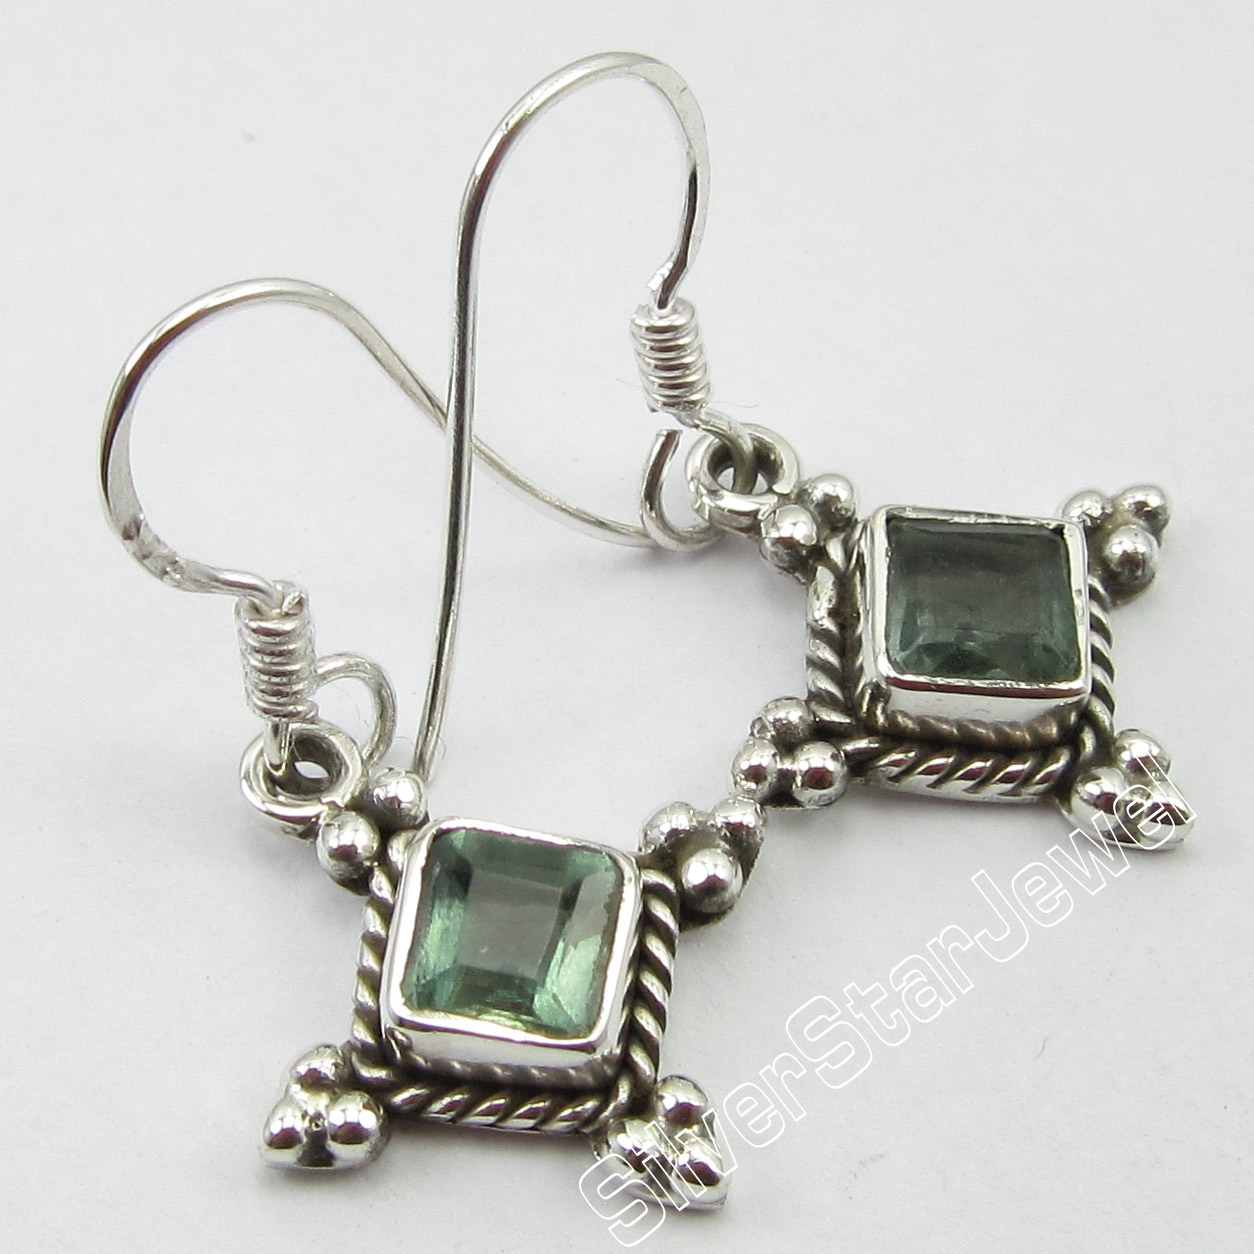 925-Silver-Fancy-SQUARE-GREEN-APATITE-Gemset-HANDMADE-BESTSELLER-Earrings-3-1-CM